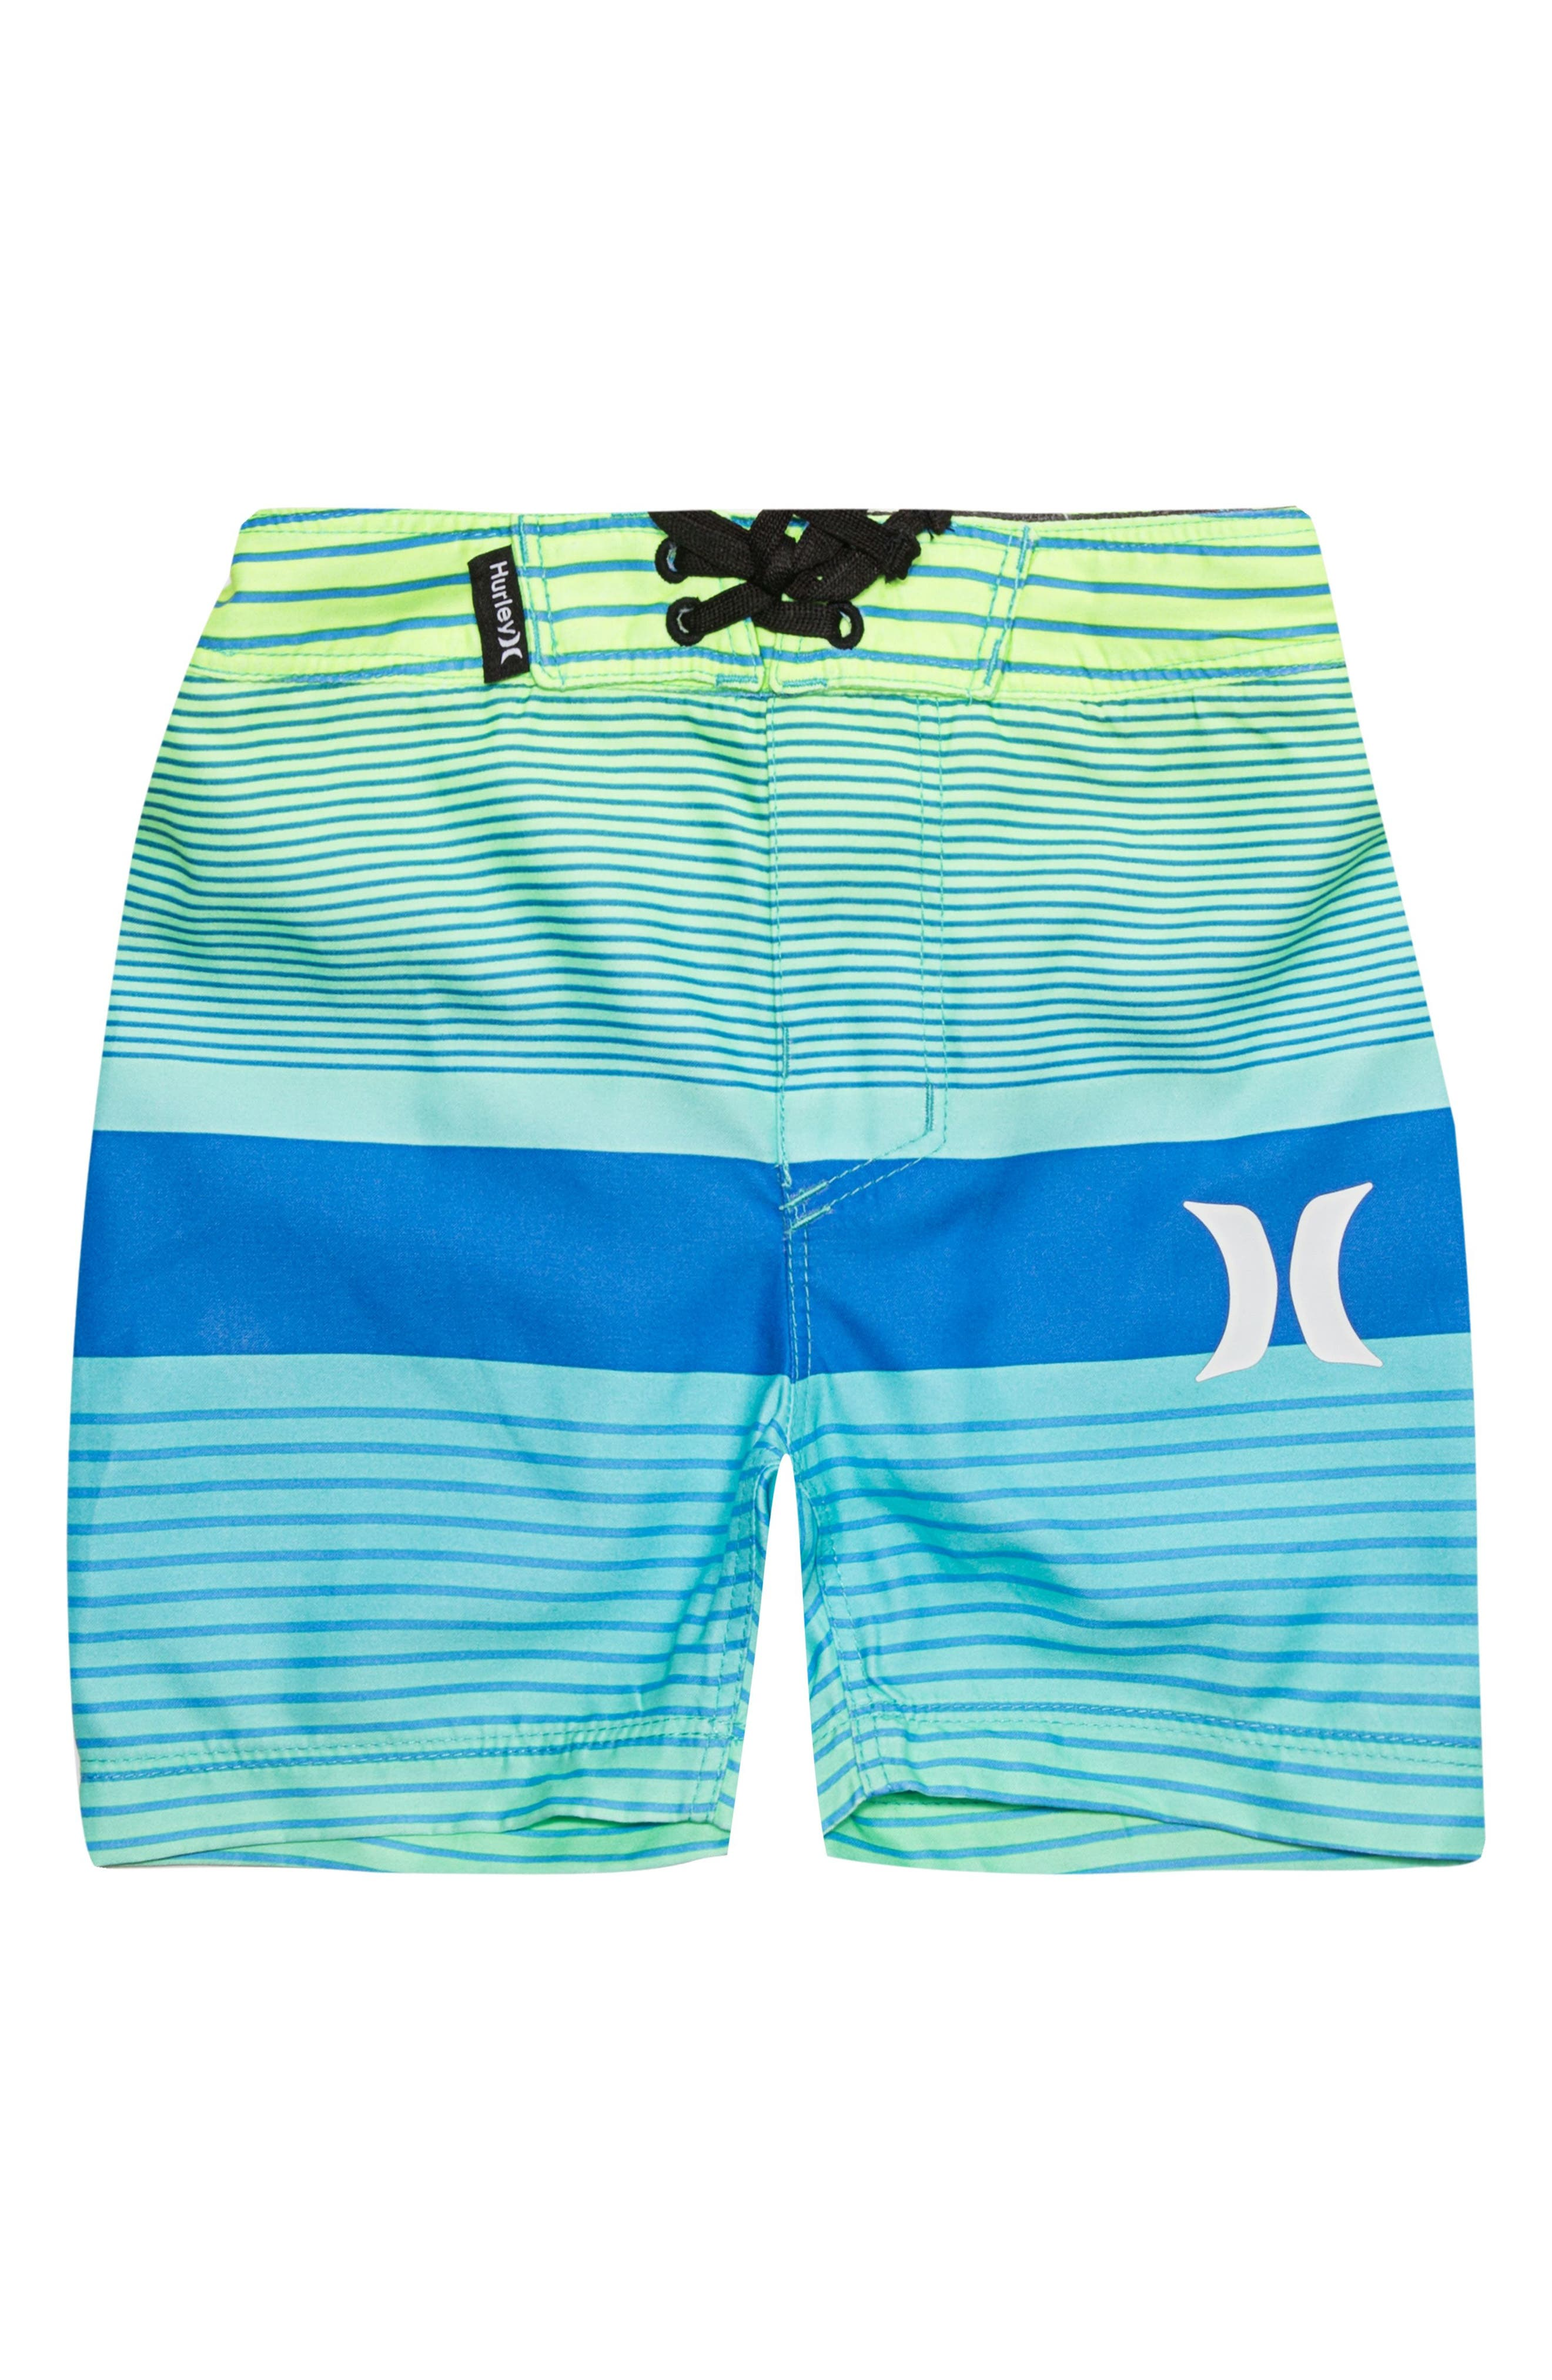 Line Up Board Shorts,                             Main thumbnail 1, color,                             Ghost Green